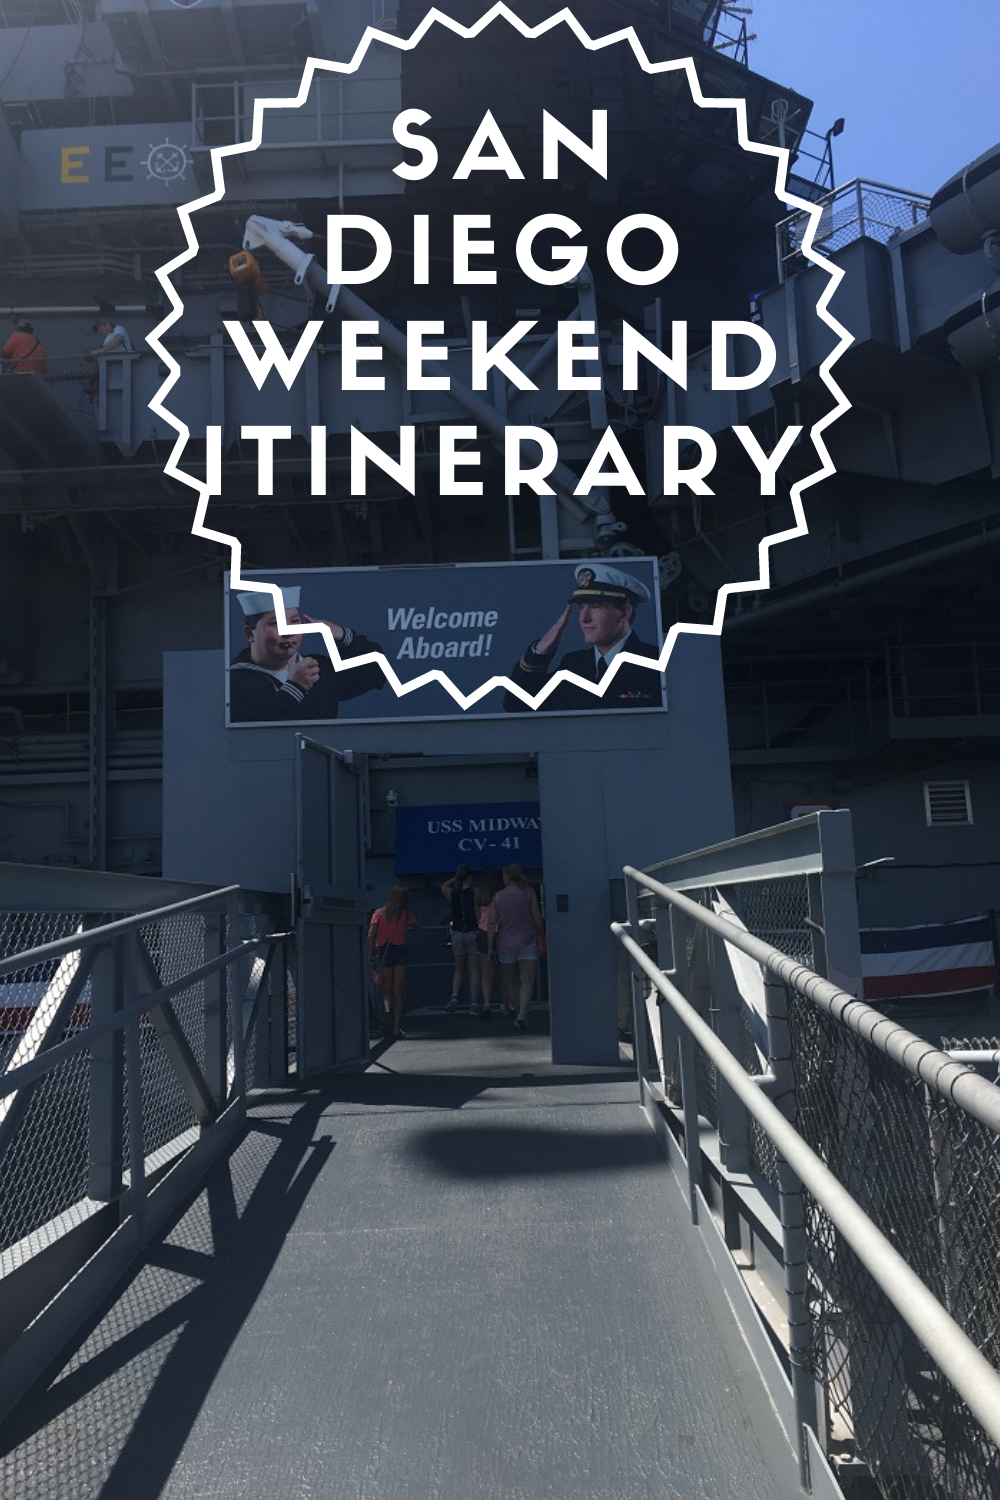 Uss Midway Museum San Diego Ca Itinerary San Diego Seaport Village Old Town San Diego